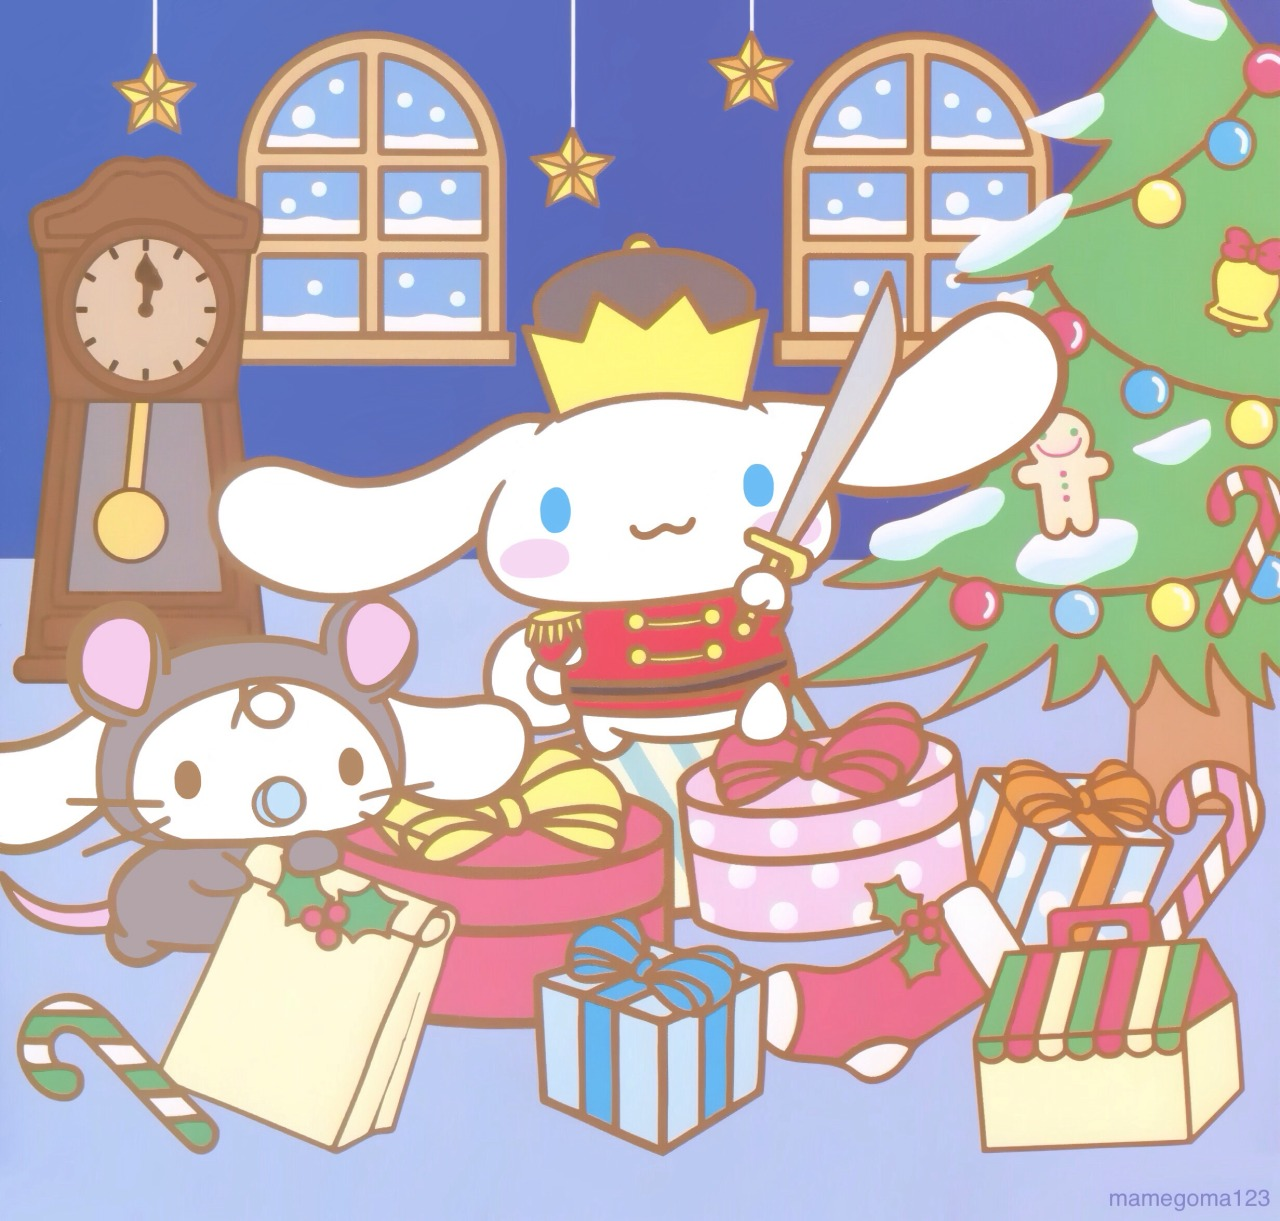 cedfdadecffeff-sanrio-cinnamon-wallpaper-wp5005646